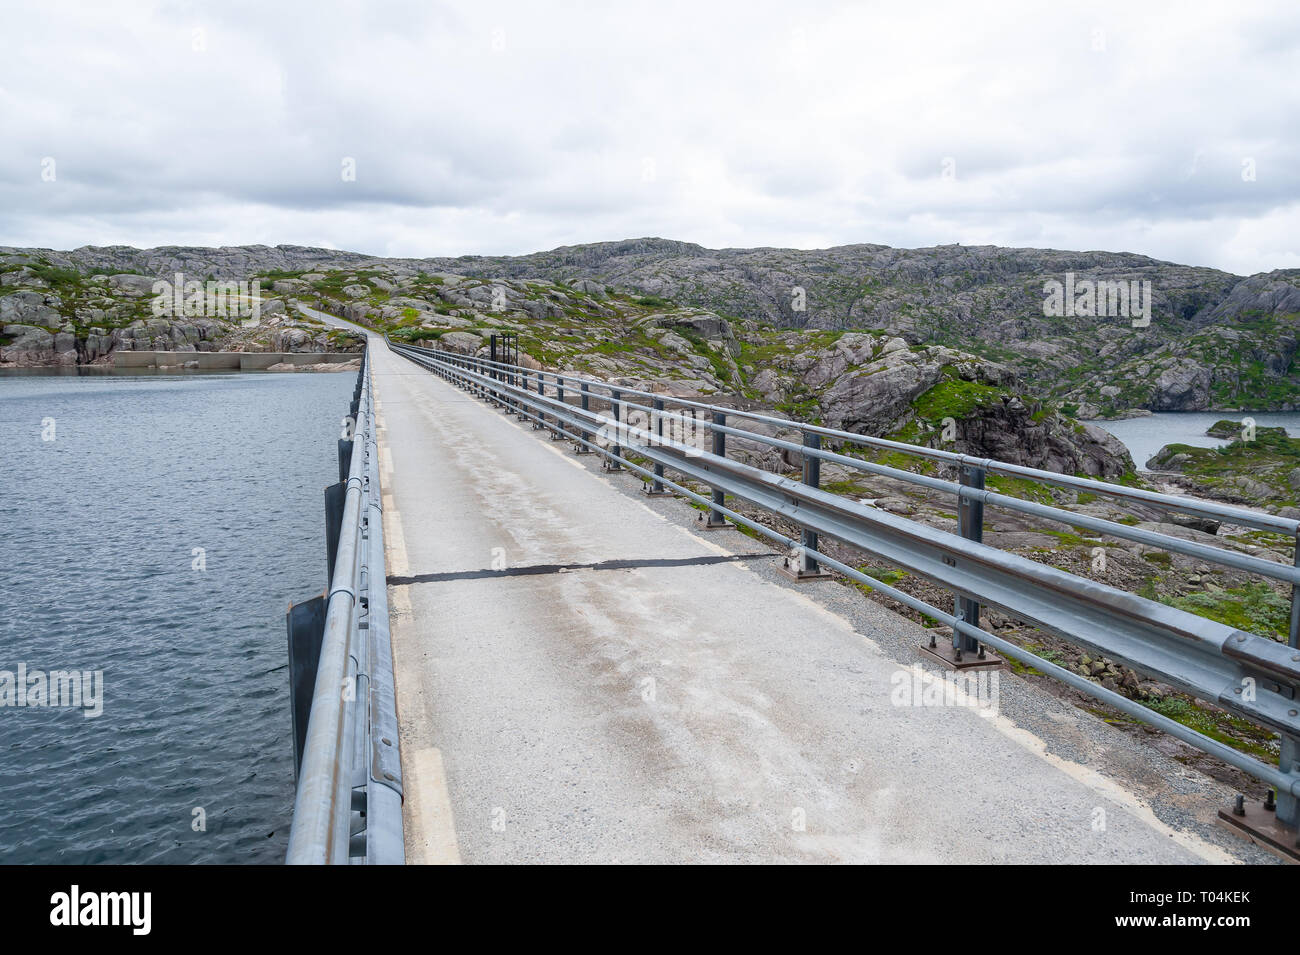 Open road on top of a small water dam. Empty road with no traffic in countryside. Rural landscape. Ryfylke scenic route. Norway. Europe. - Stock Image